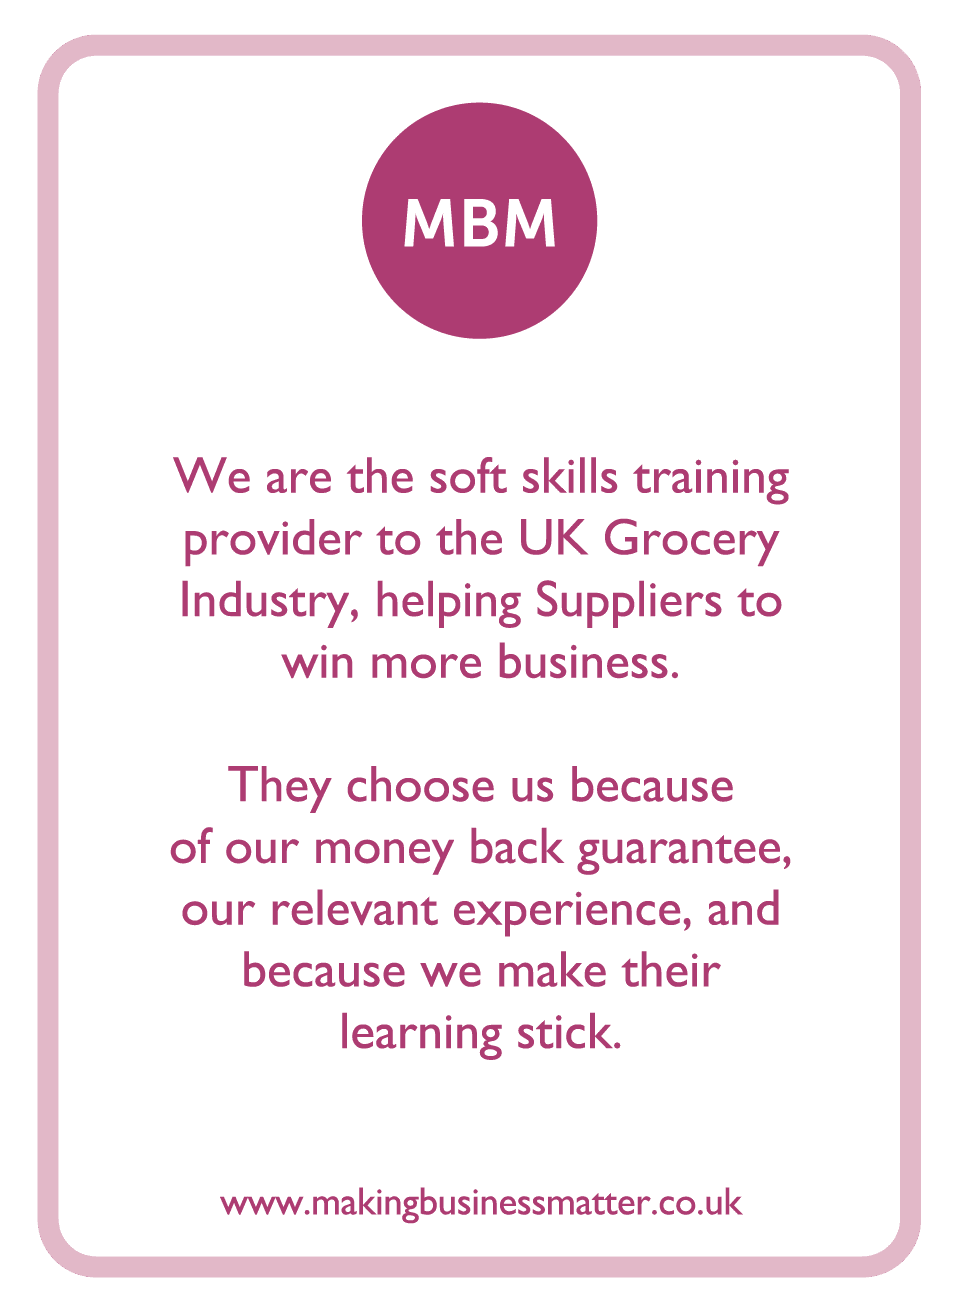 Coaching card with MBM info